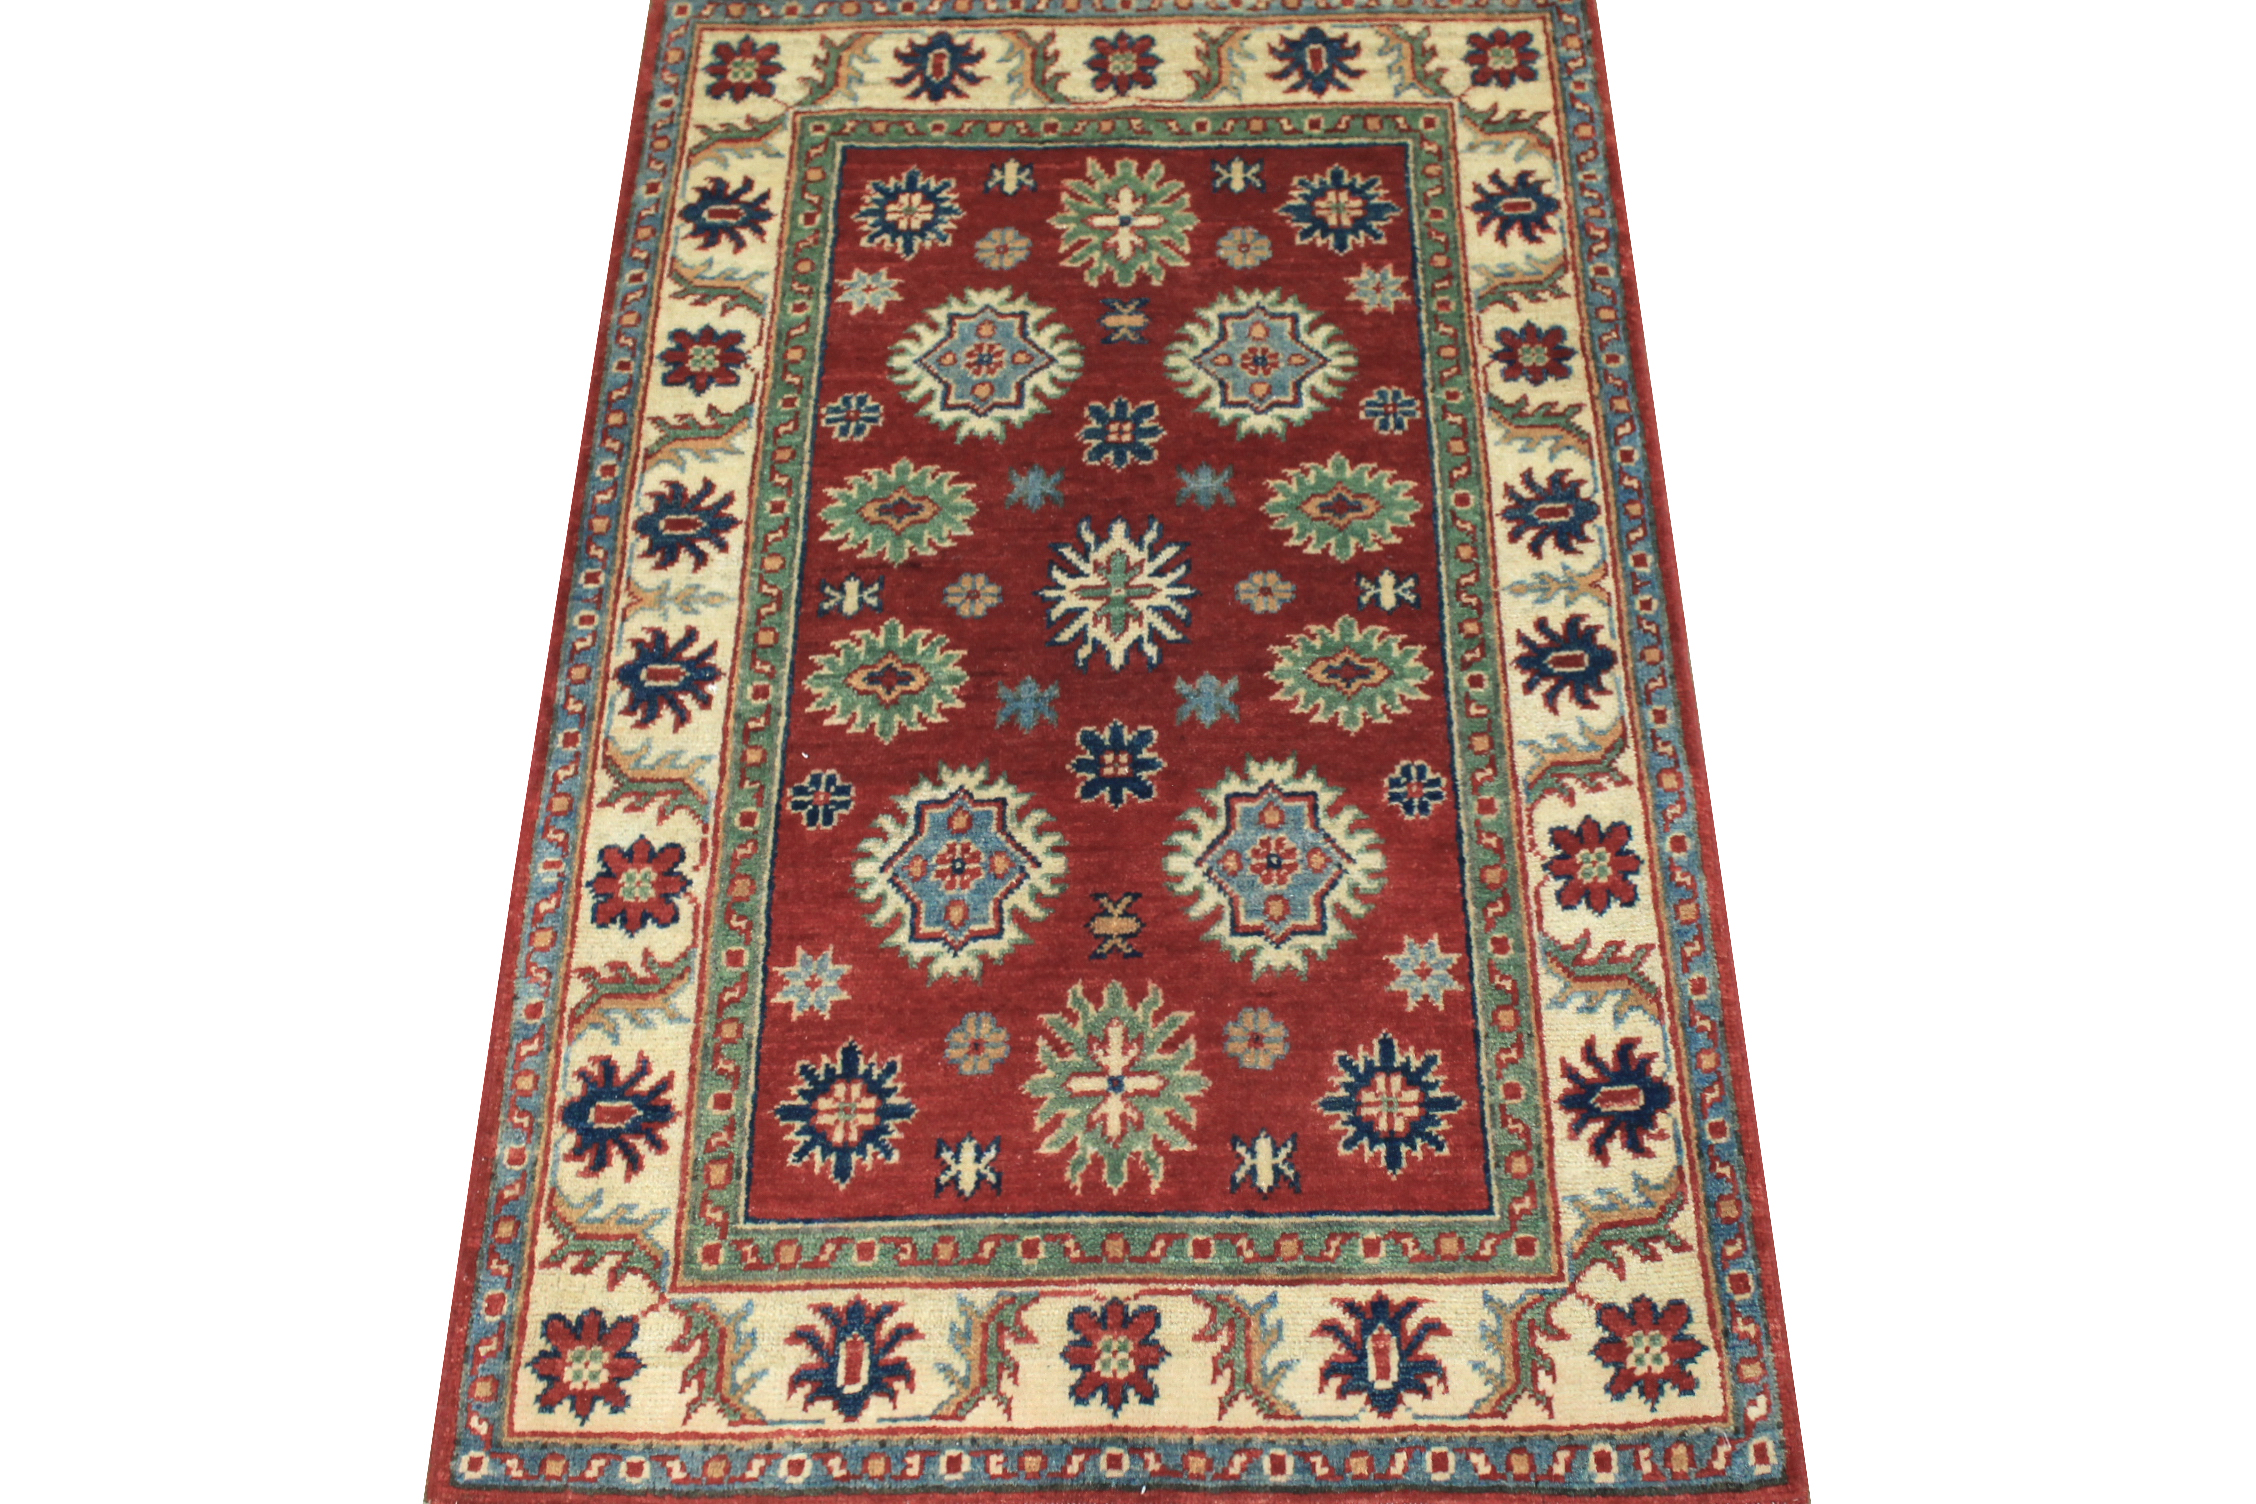 2X4 Kazak Hand Knotted Wool Area Rug - MR024542